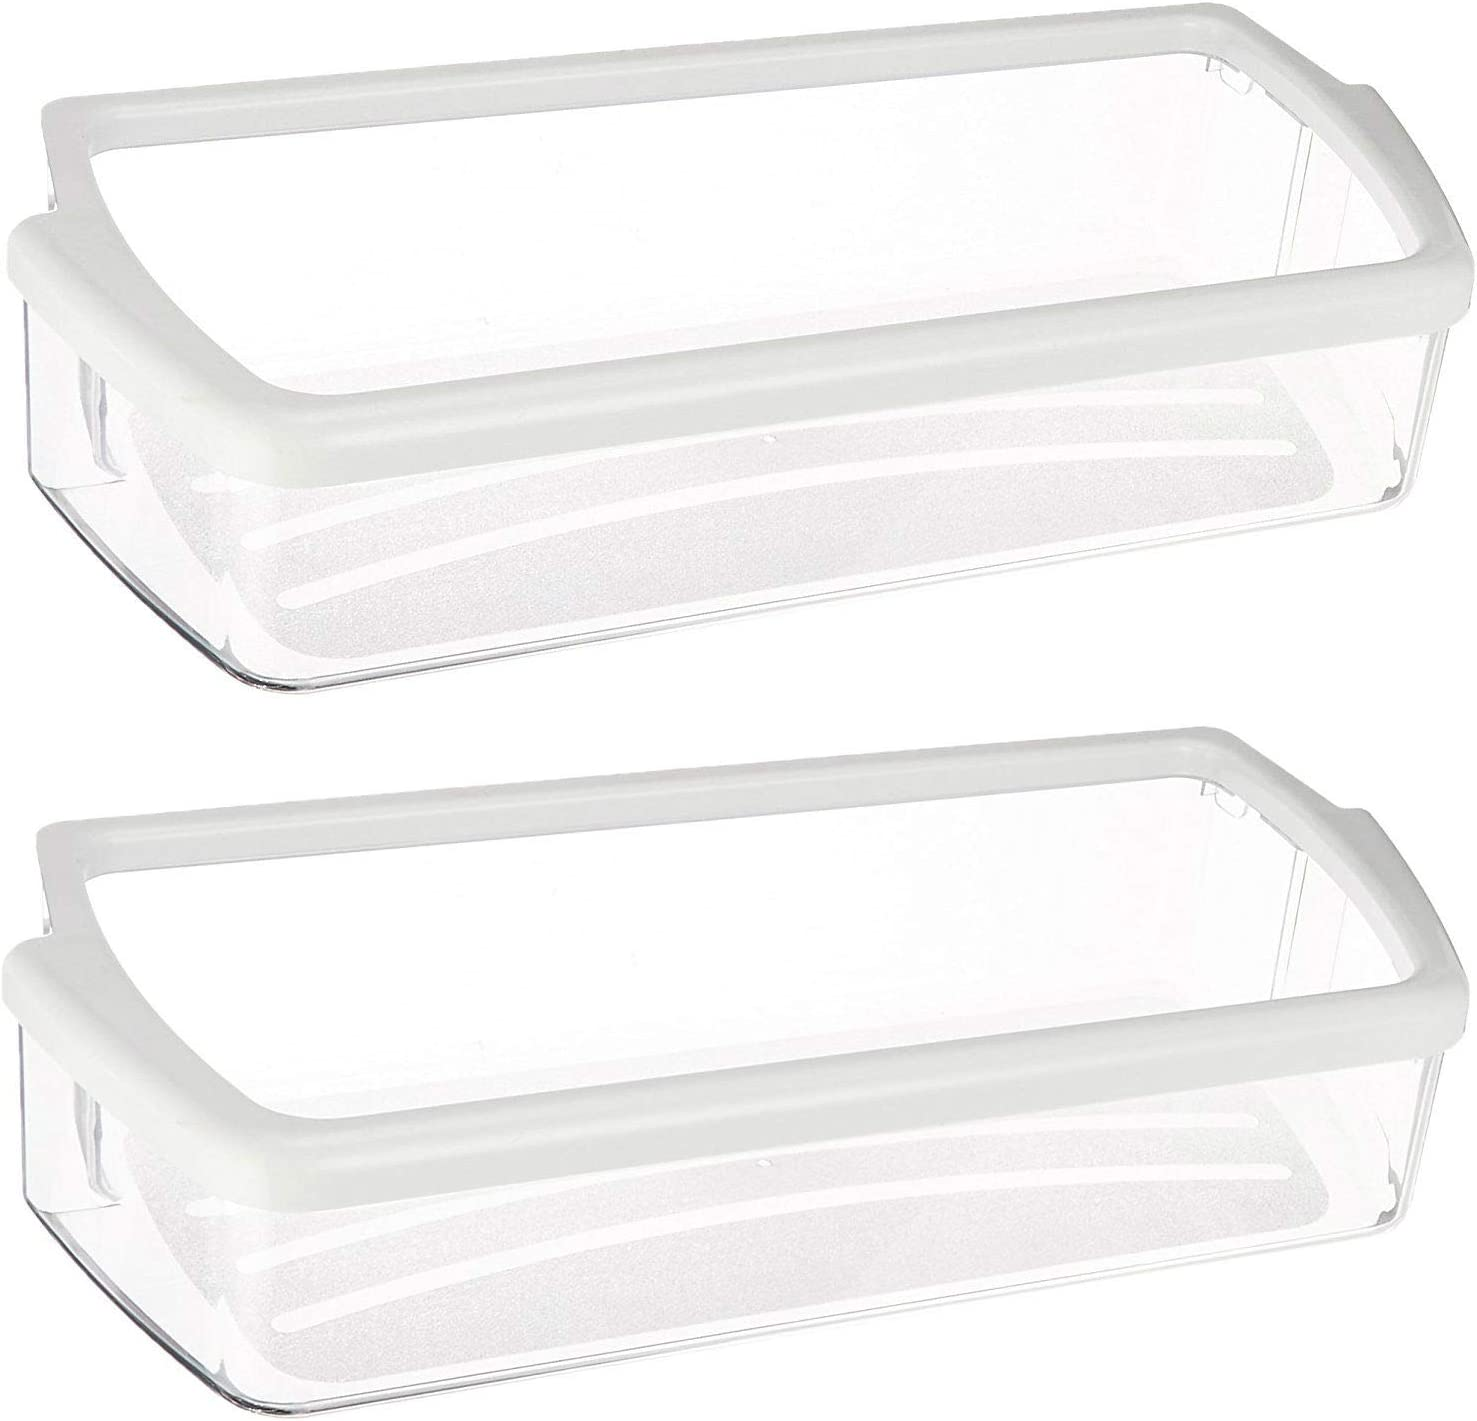 Kitchen Basics 101 W10321304 Replacement for Whirlpool Clear Door Bin with White Band on top 2 pack: Home Improvement